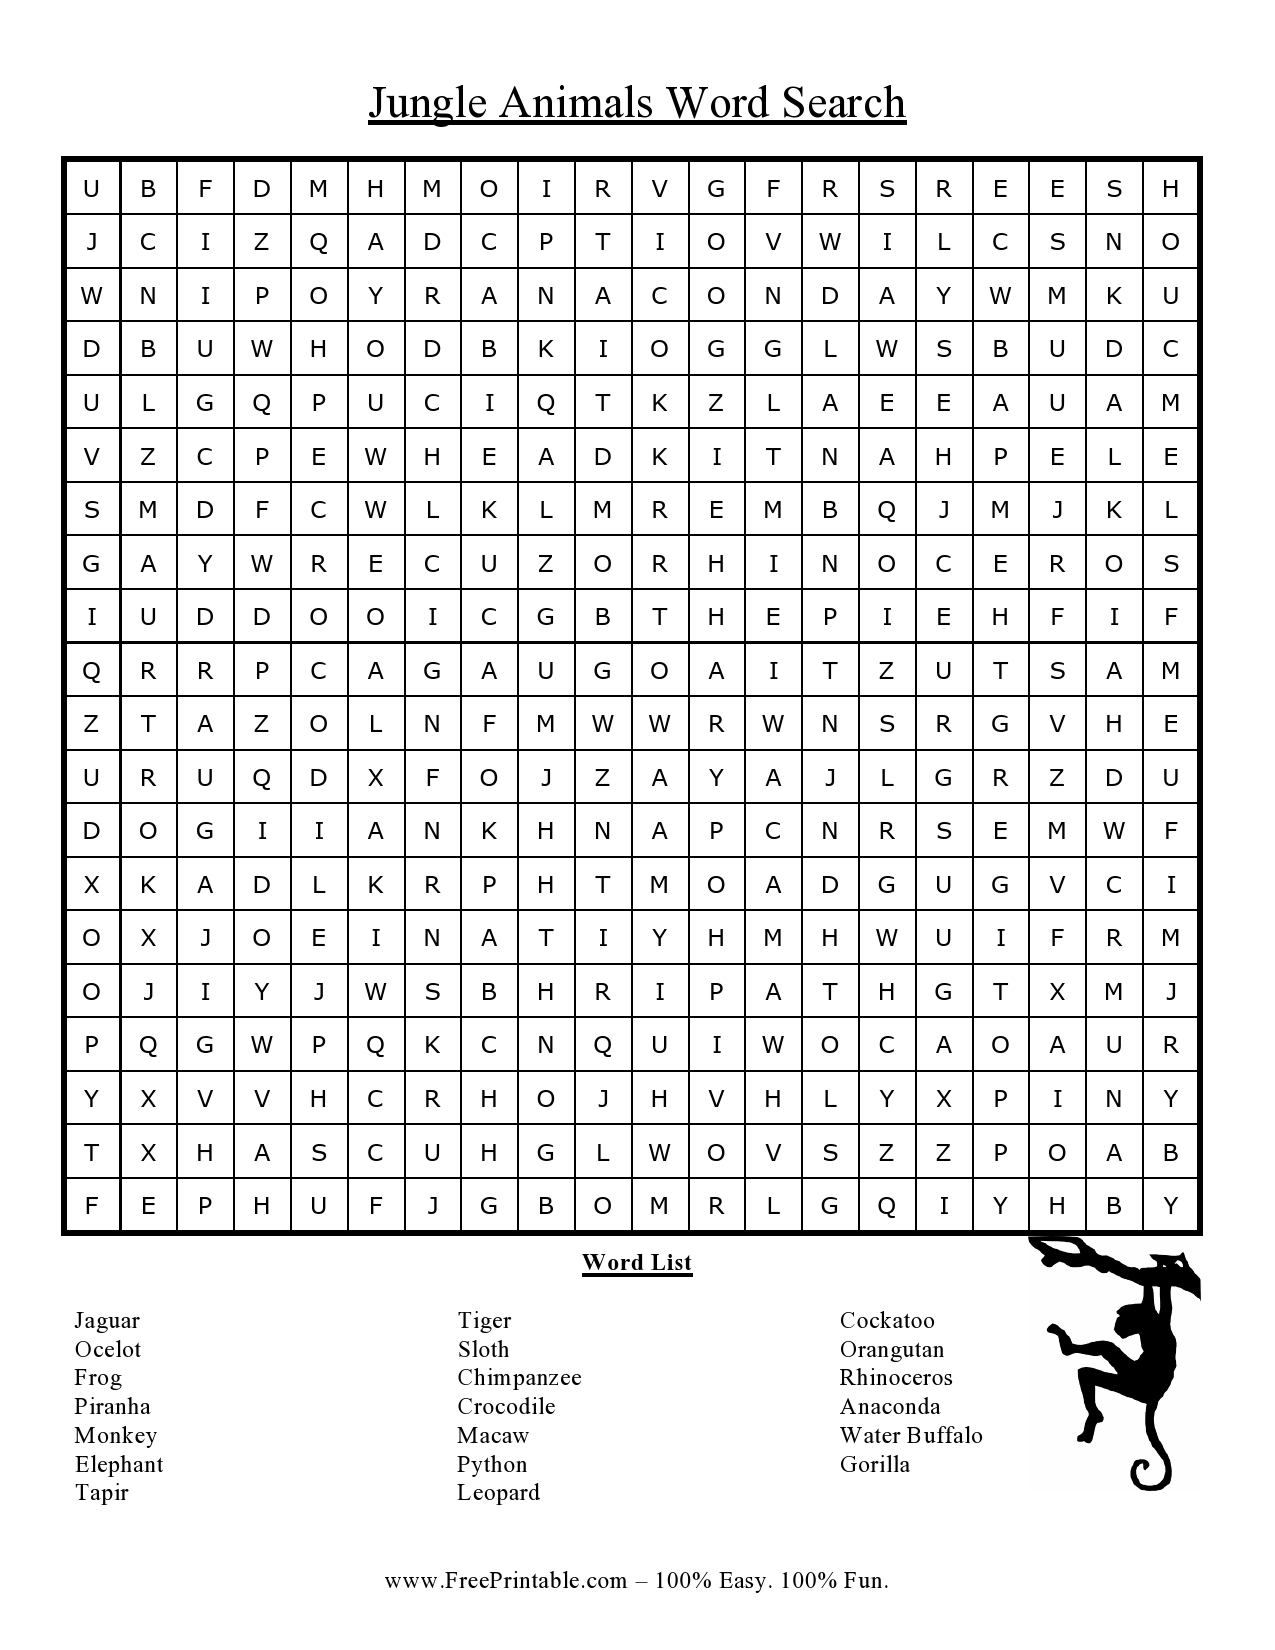 Customize Your Free Printable Jungle Animals Word Search